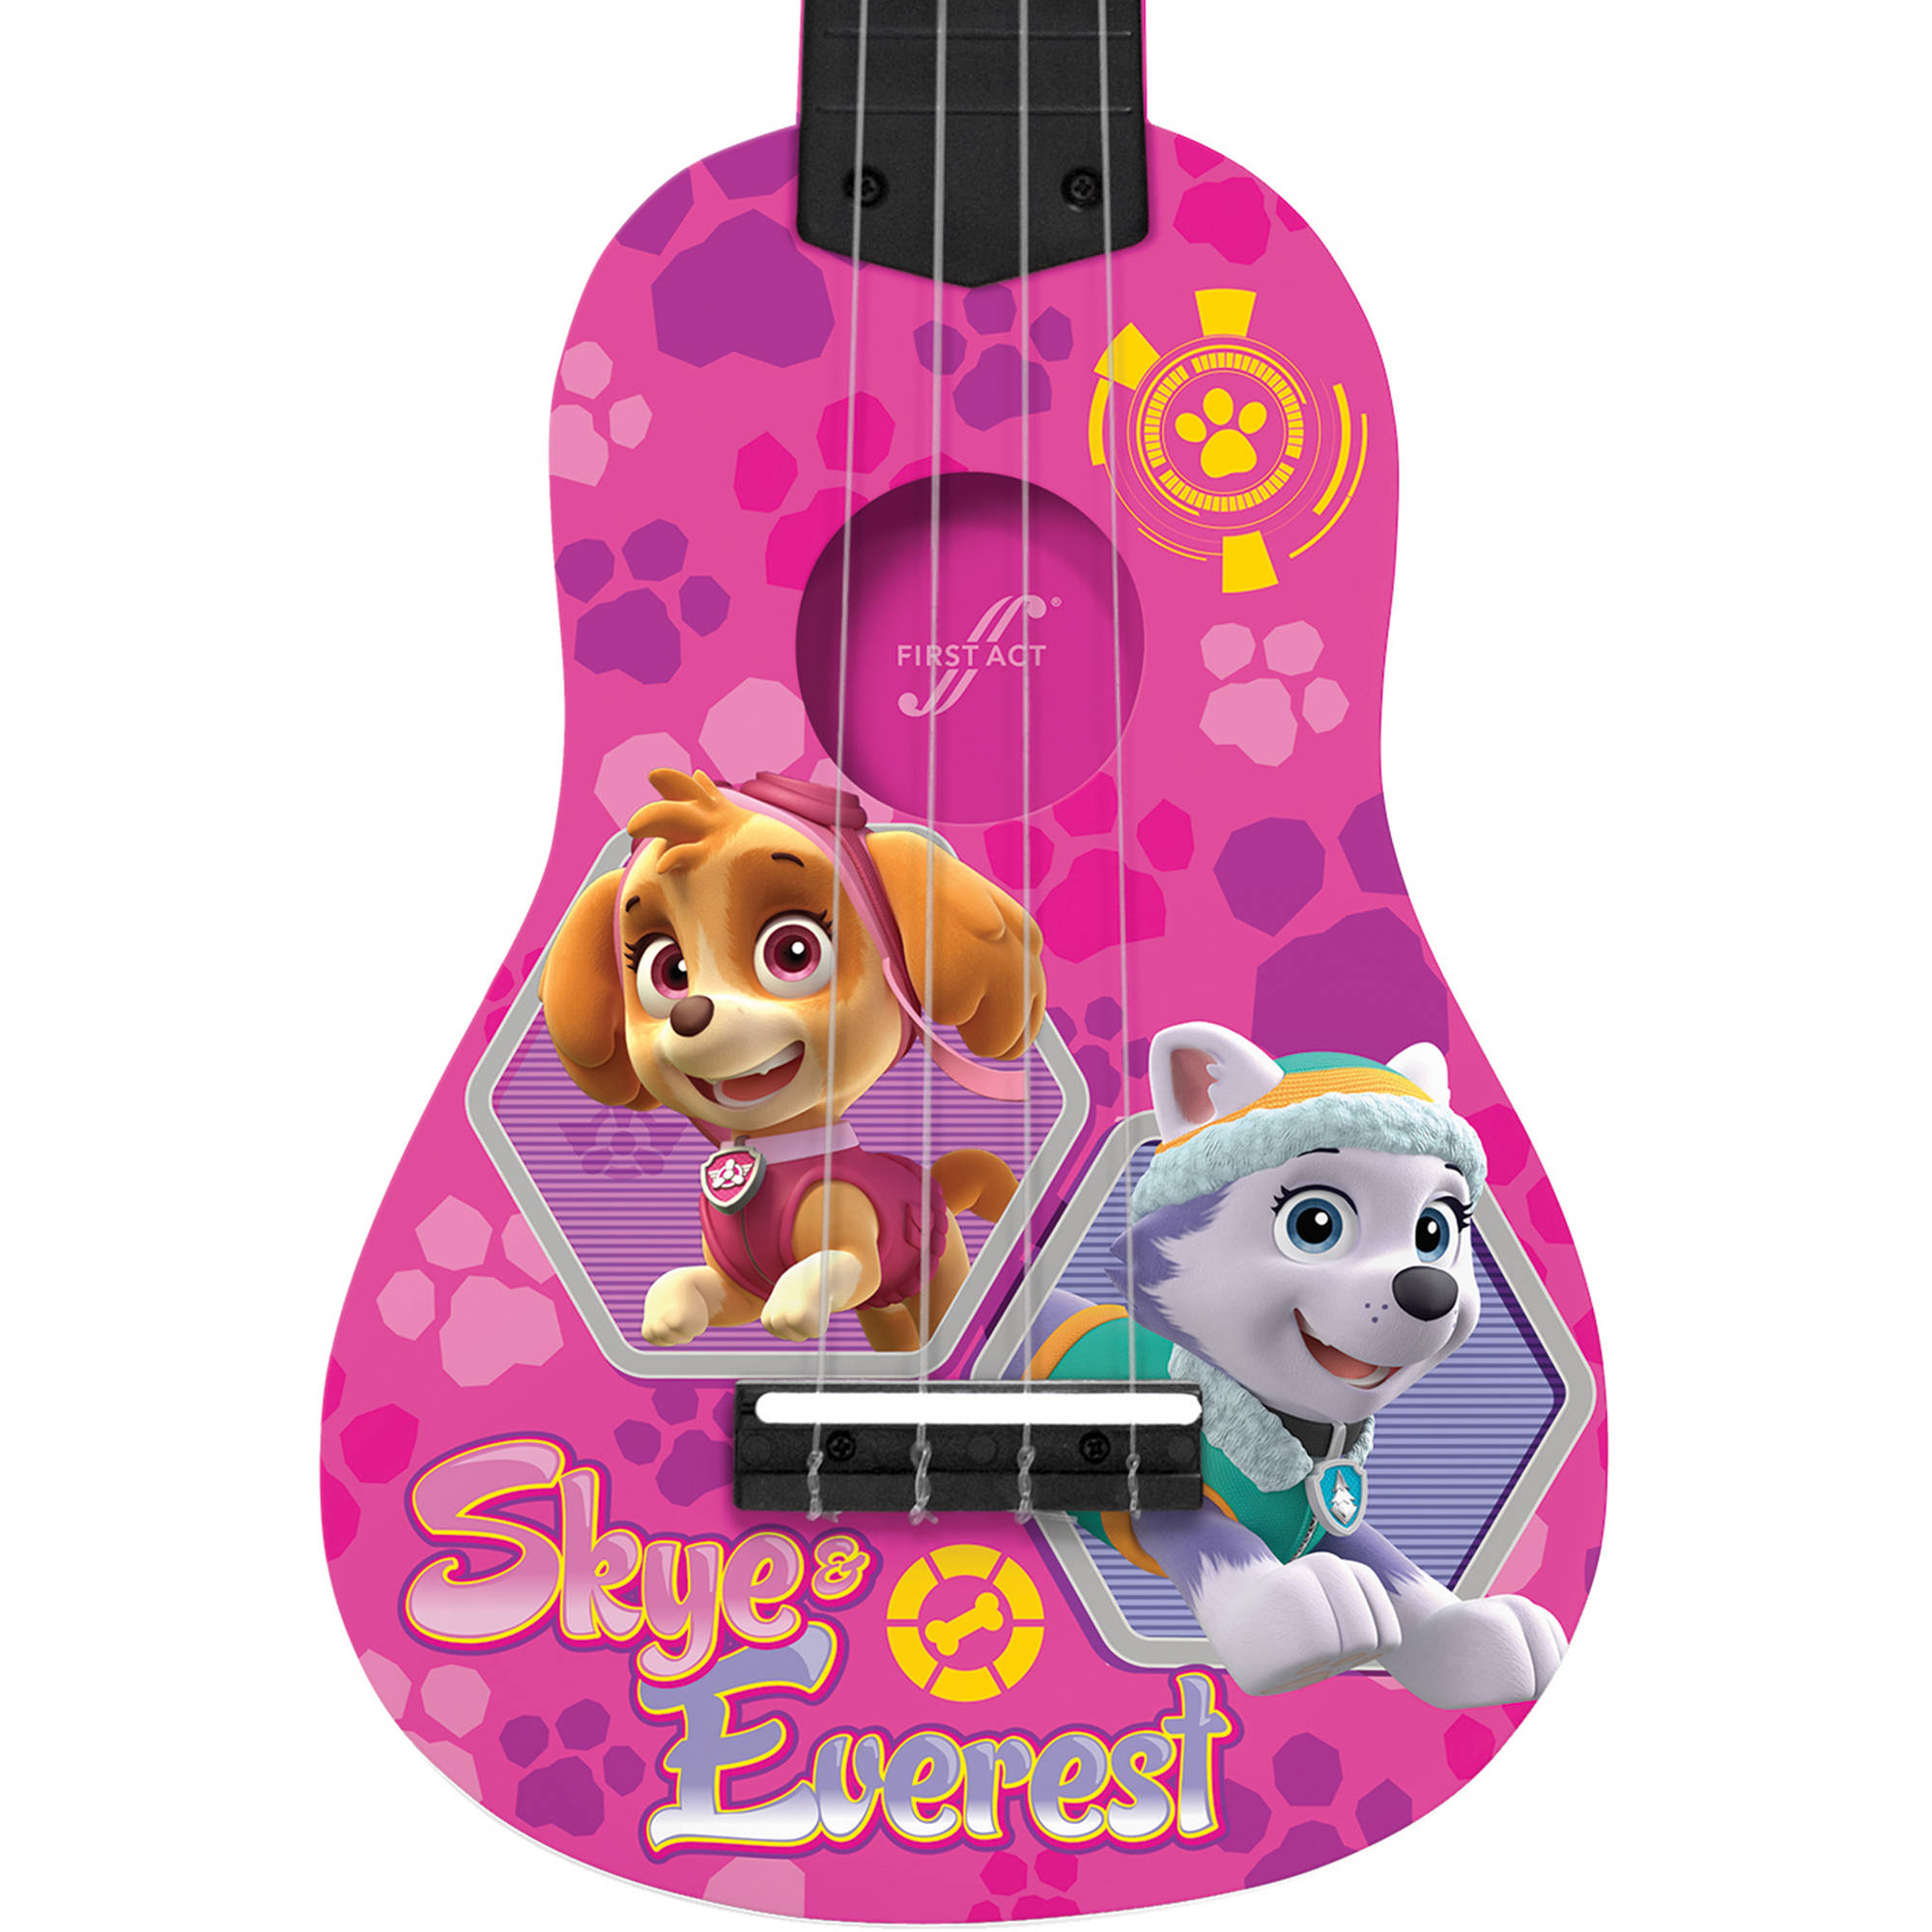 First Act Nickelodeon Paw Patrol Mini Guitar PP287 Pink Walmart